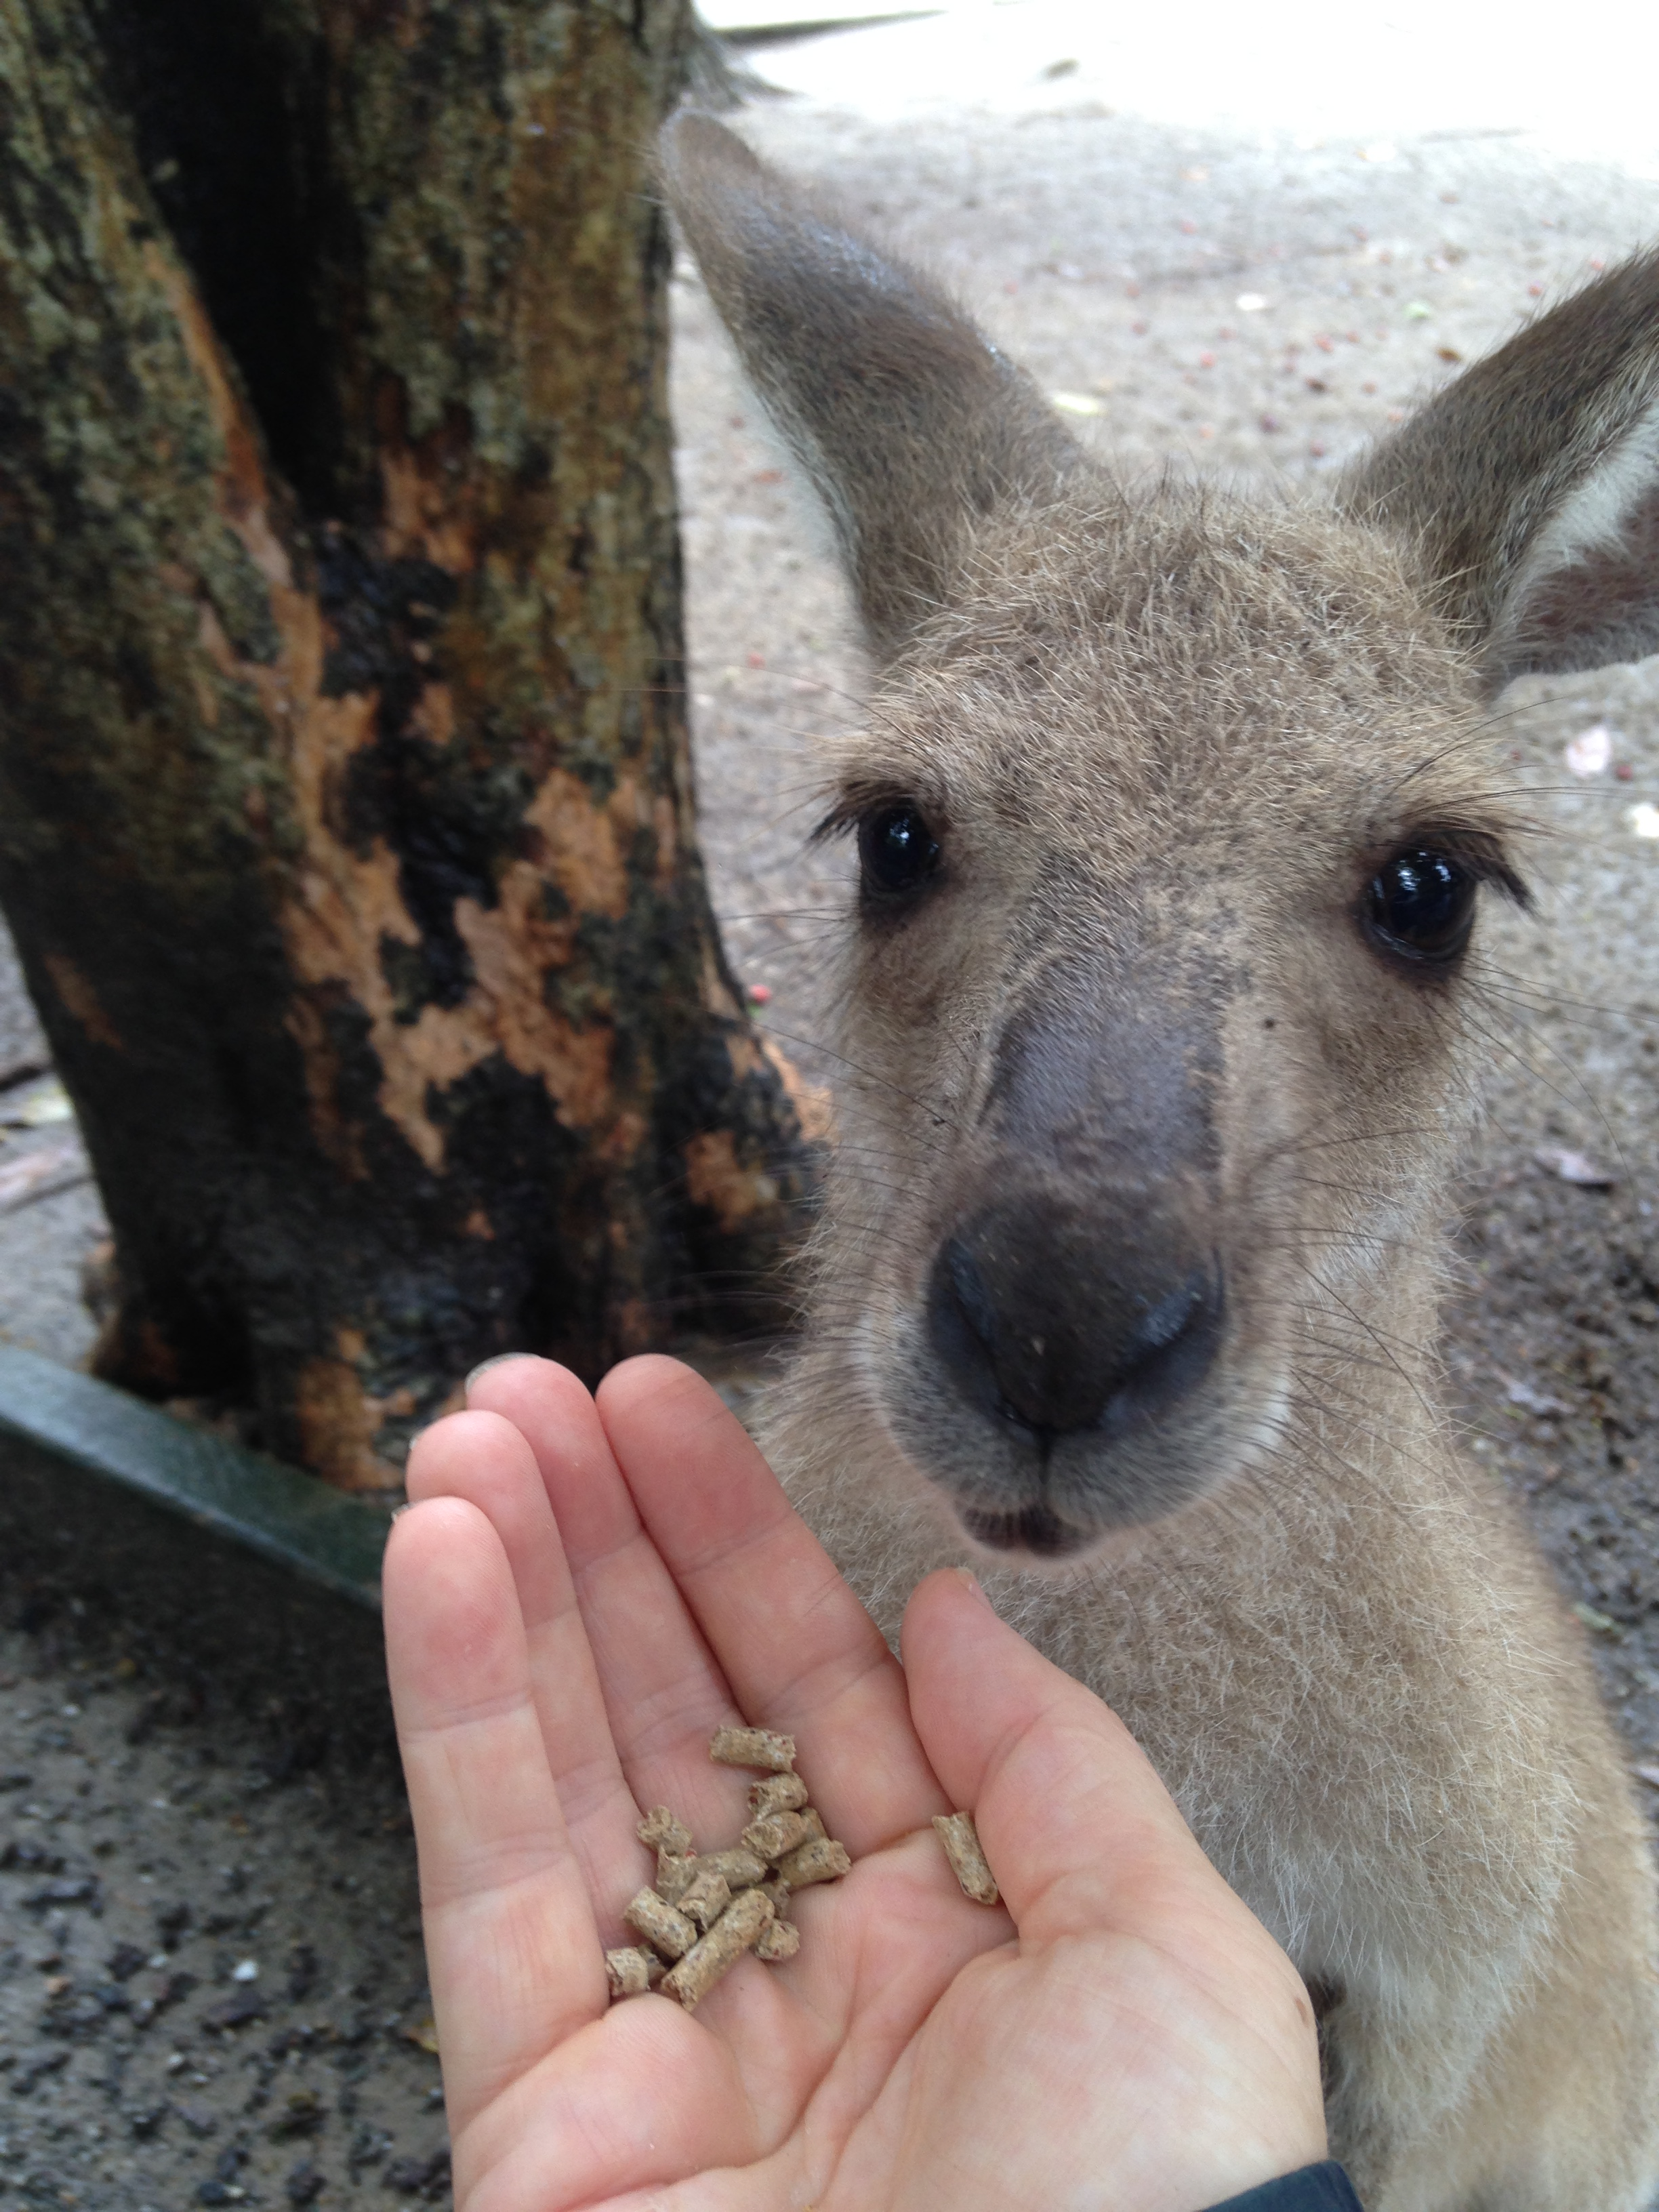 Cuddling a koala, breakfasting with birds and snuggling a snake in Cairns – Wildlife Habitat Zoo